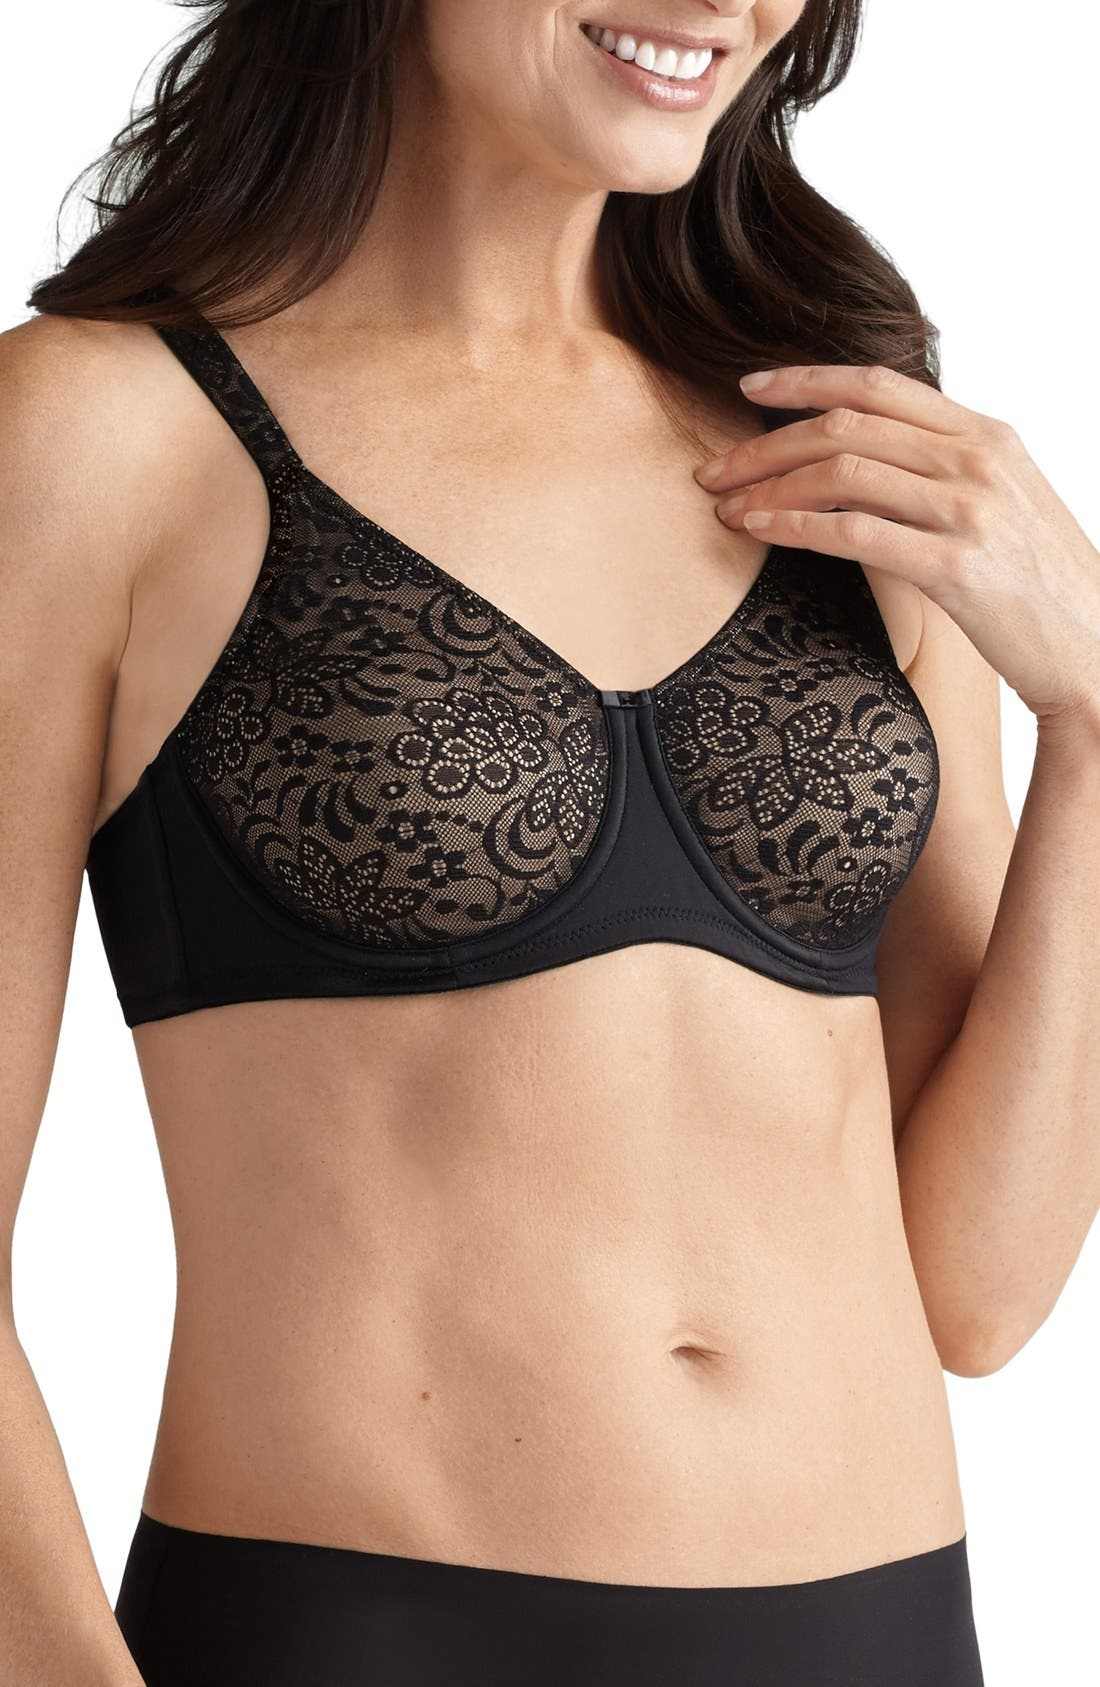 'Annette' Lace Underwire Bra,                         Main,                         color, Black